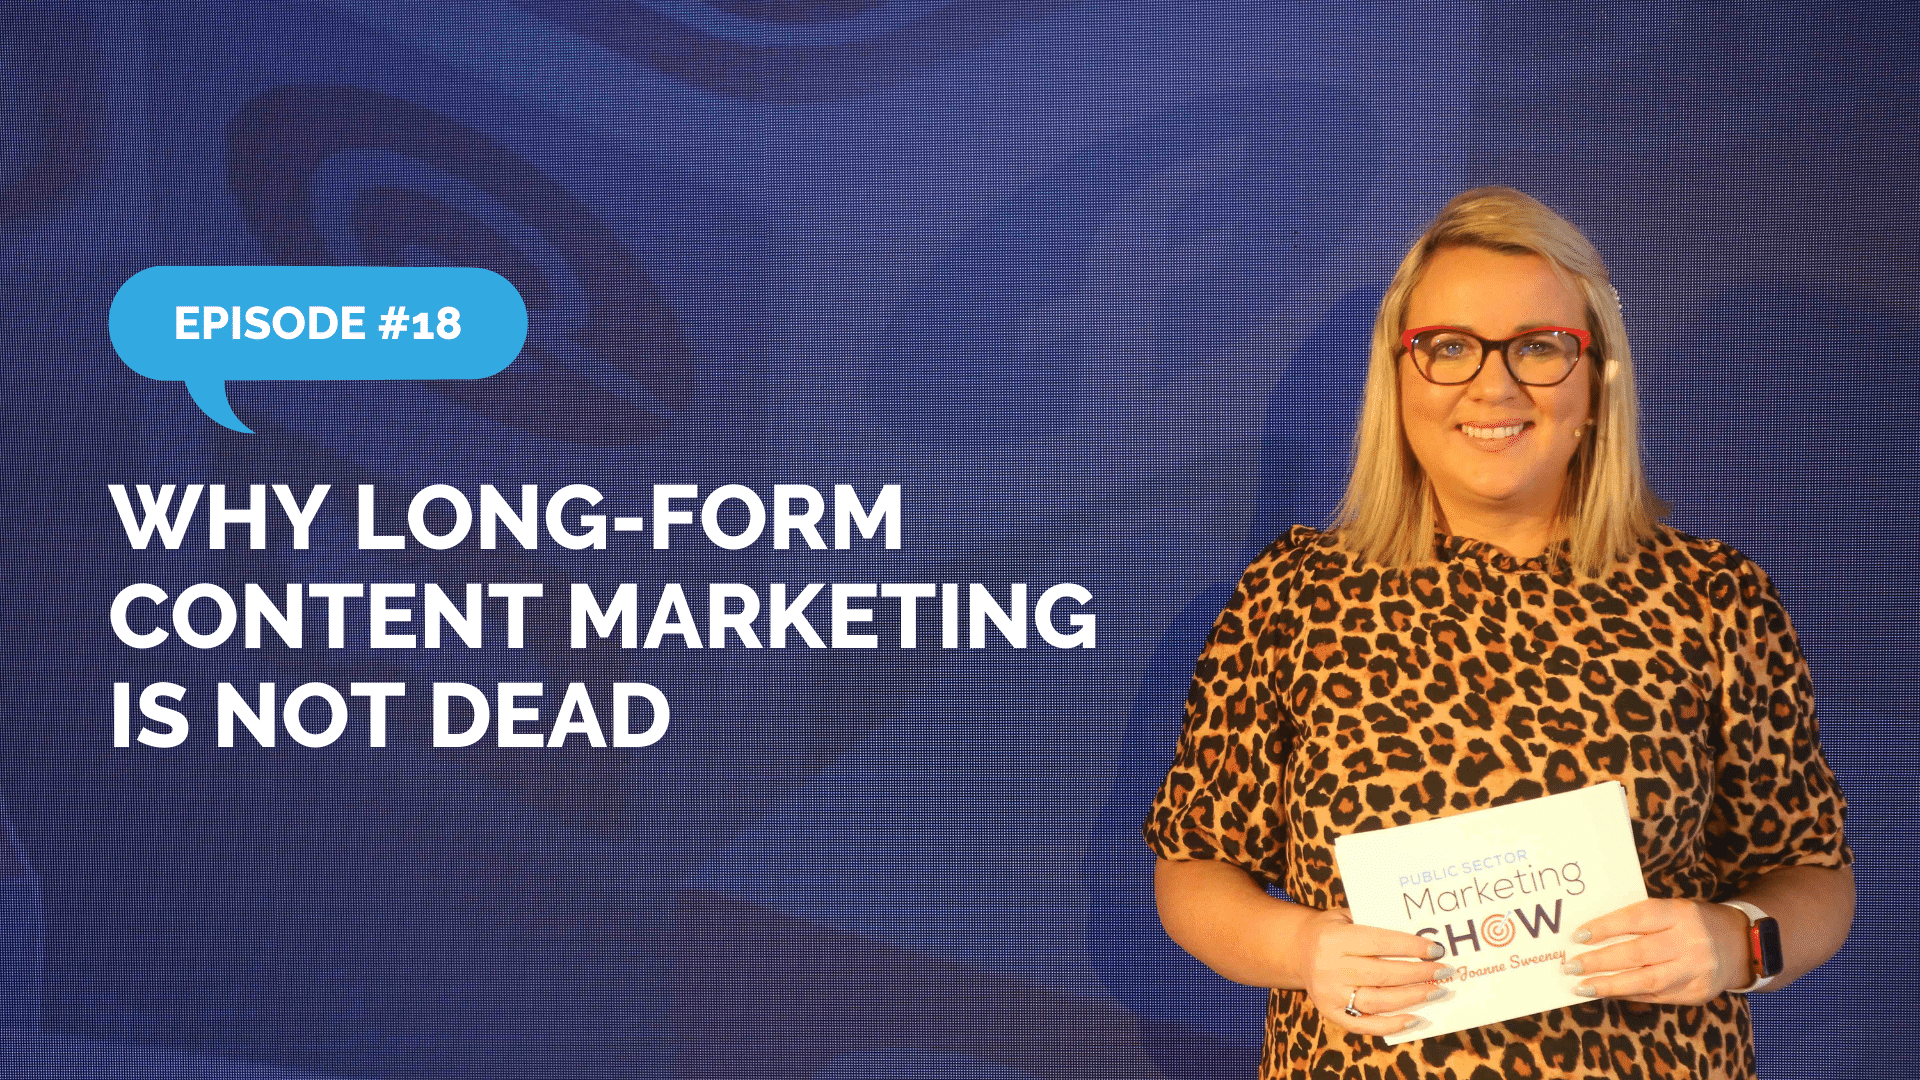 Episode 18 - Why Long-Form Content Marketing Is Not Dead